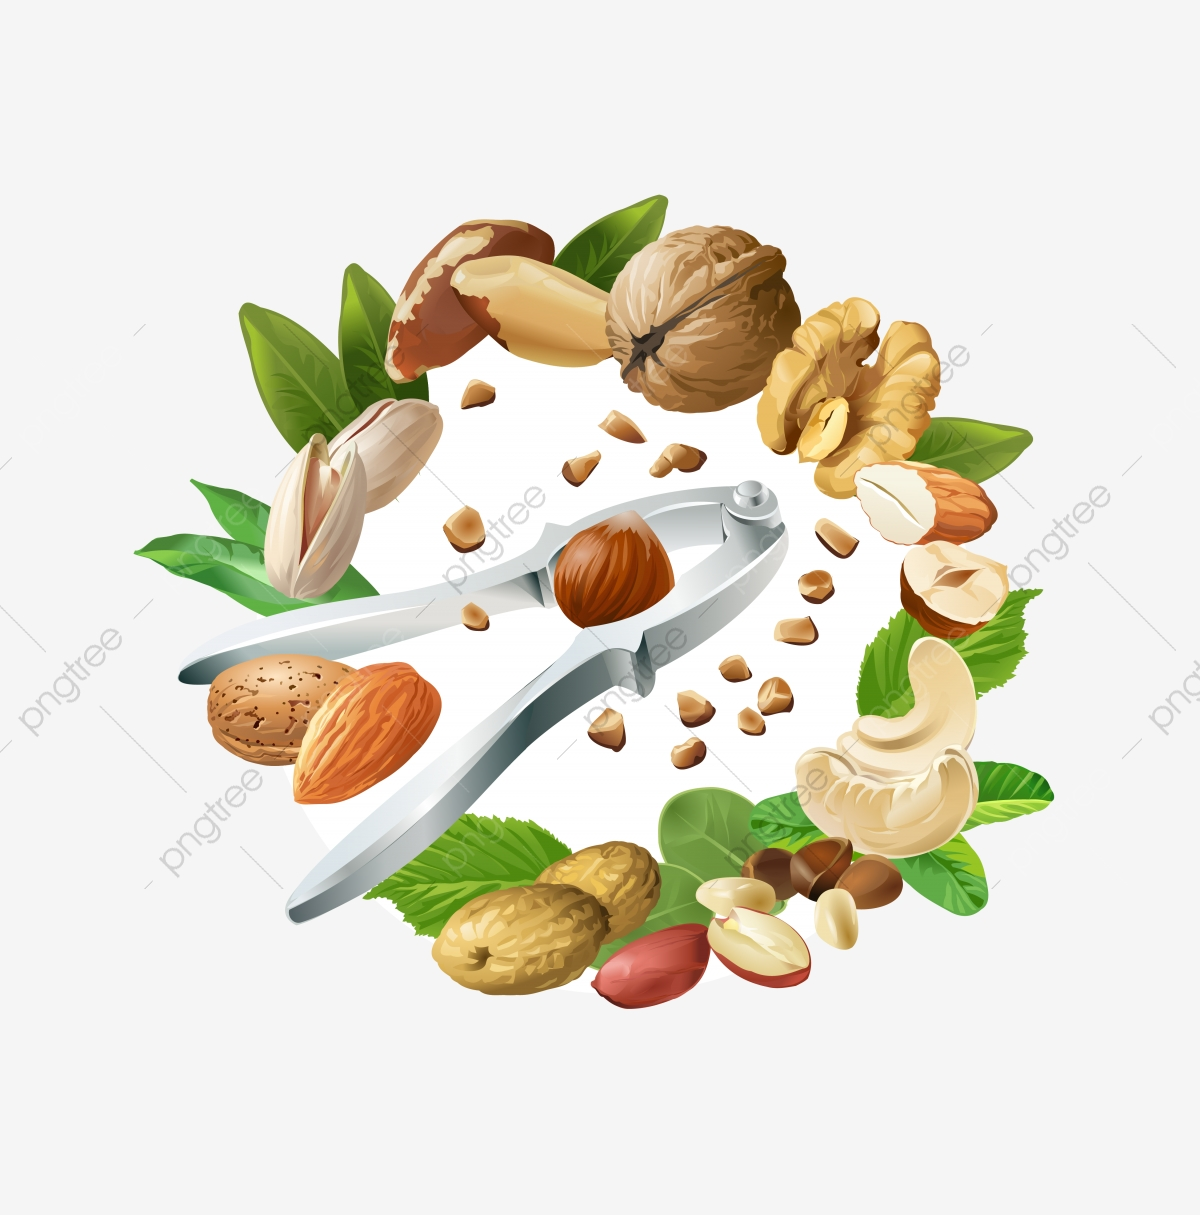 Vector Illustration Mix Of Different Types Nuts, Nuts, Nut